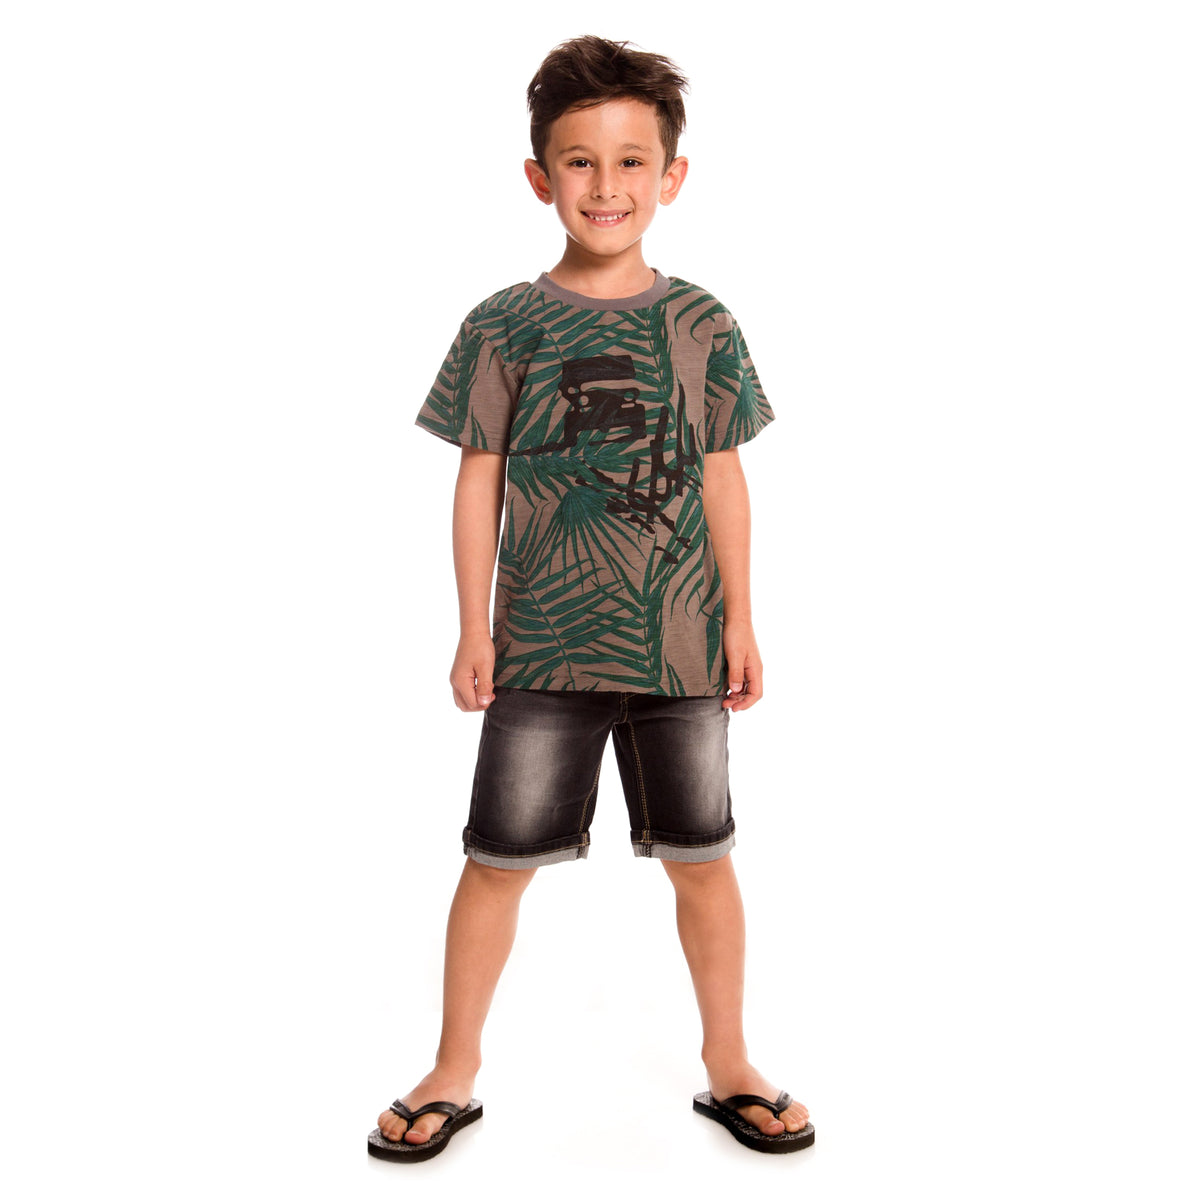 Boys Charcoal T-Shirt With Palm Tree Print